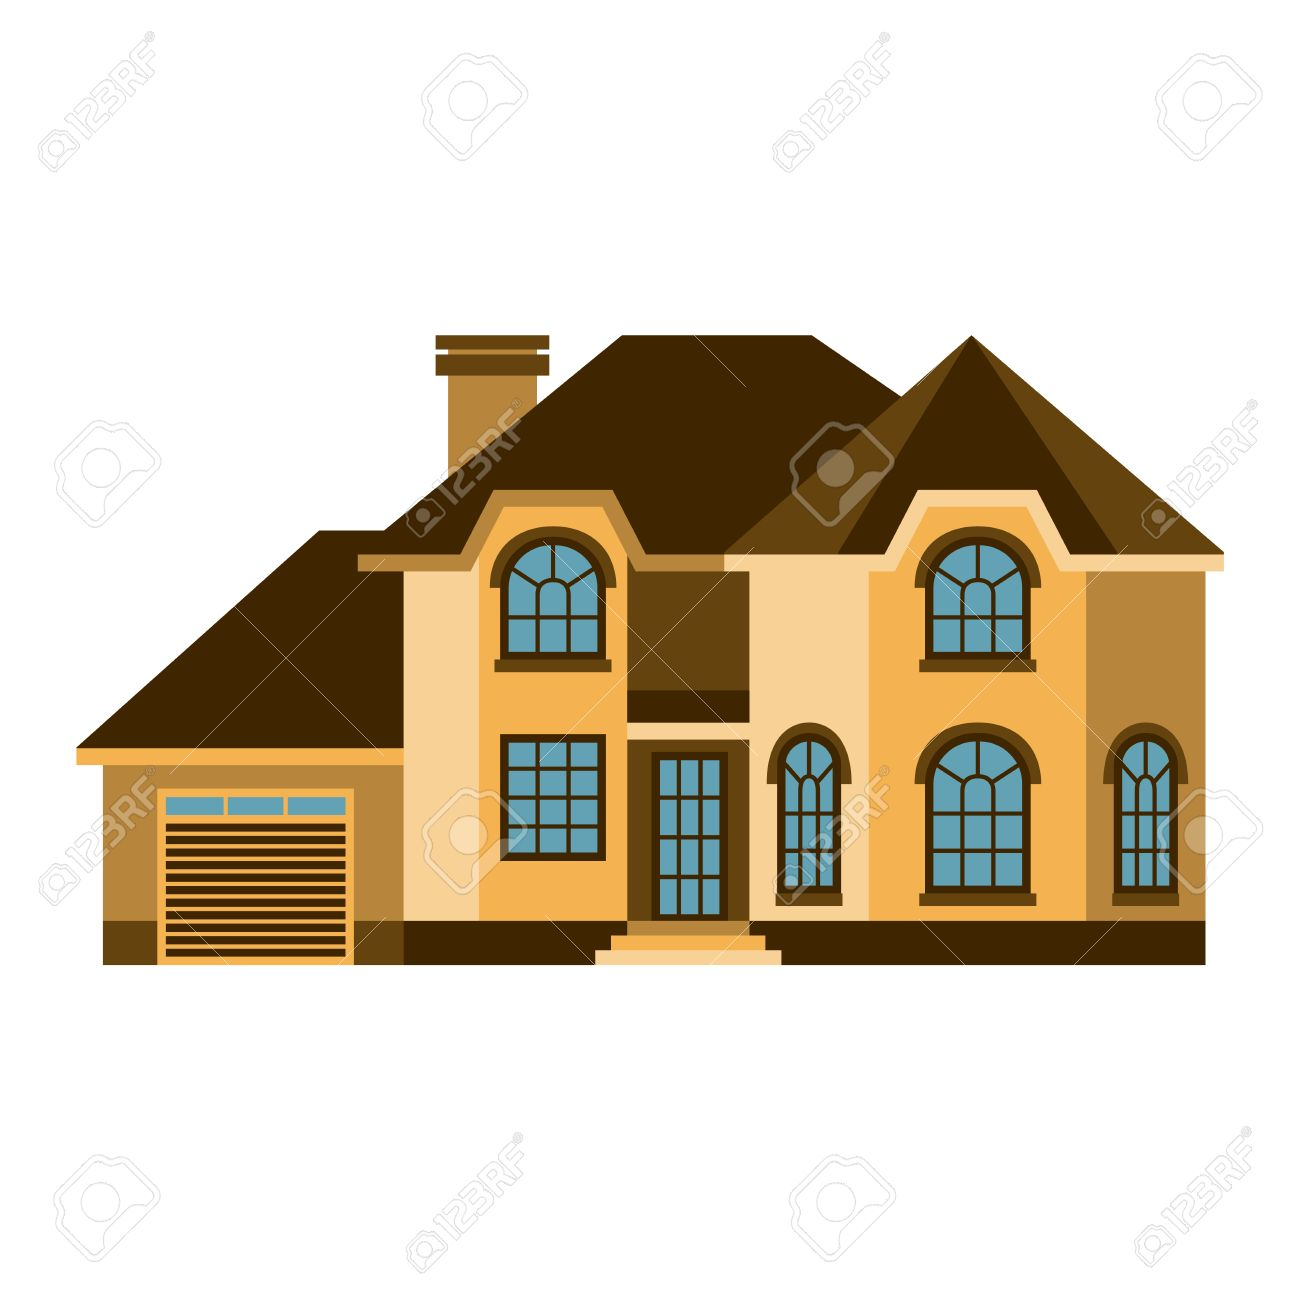 House Front View Vector Illustration Houses Flat Style Modern